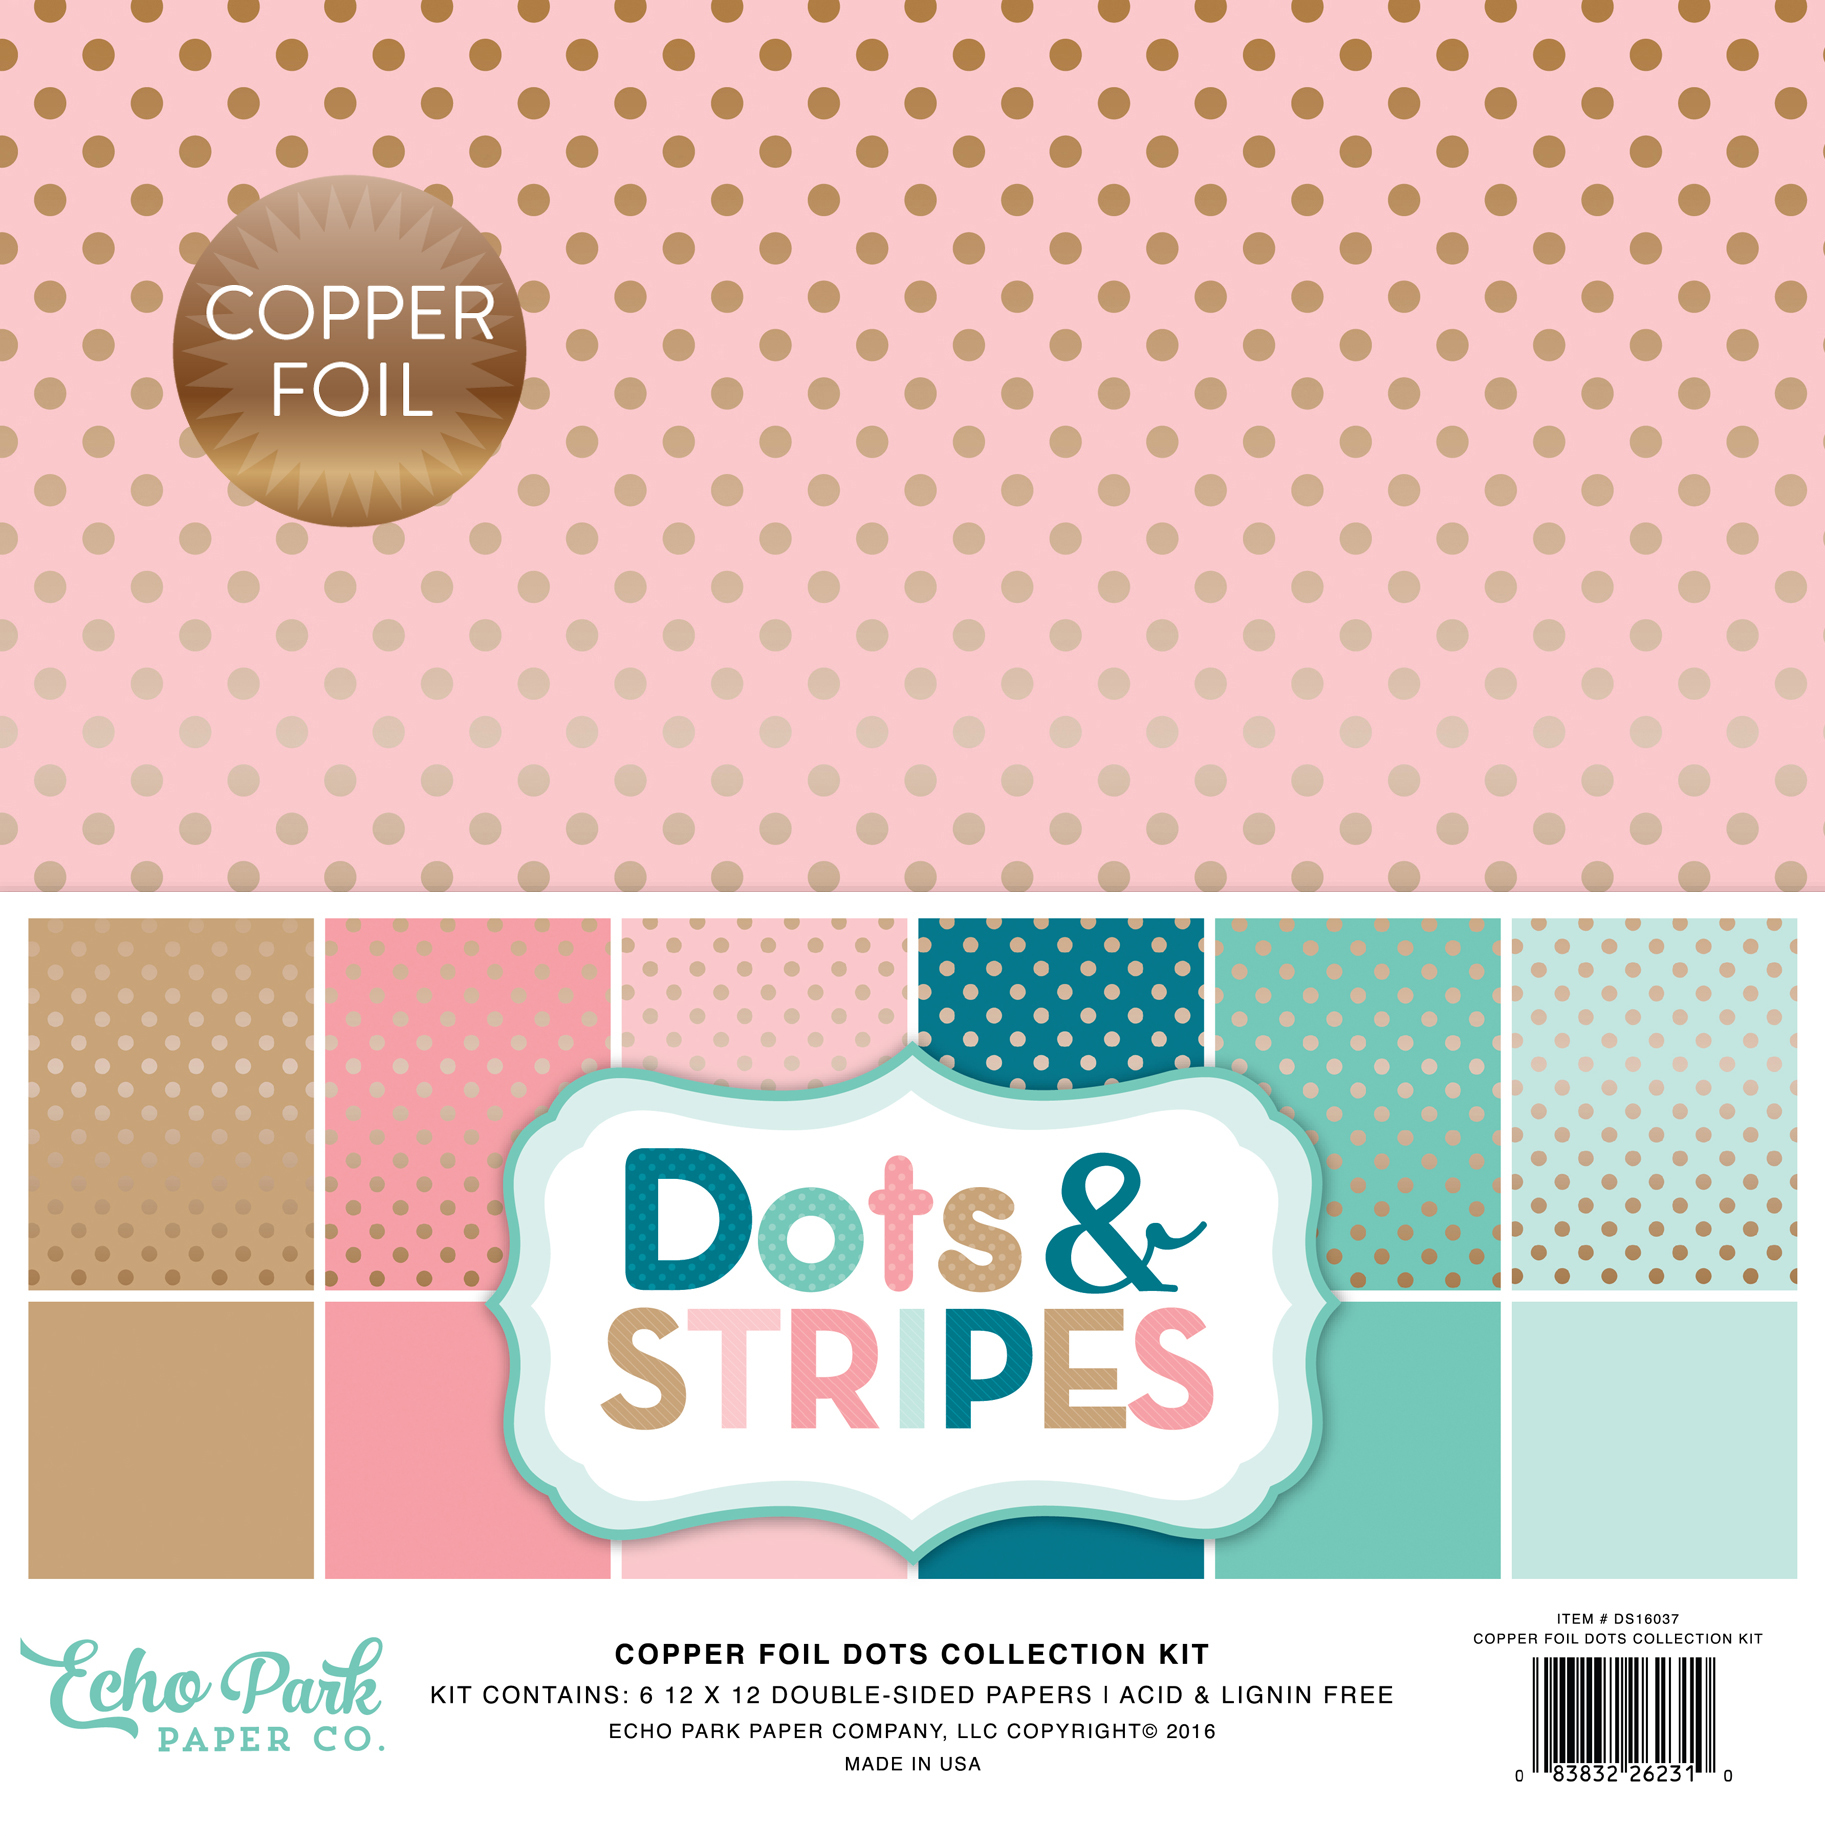 Dots & Stripes Copper Foil